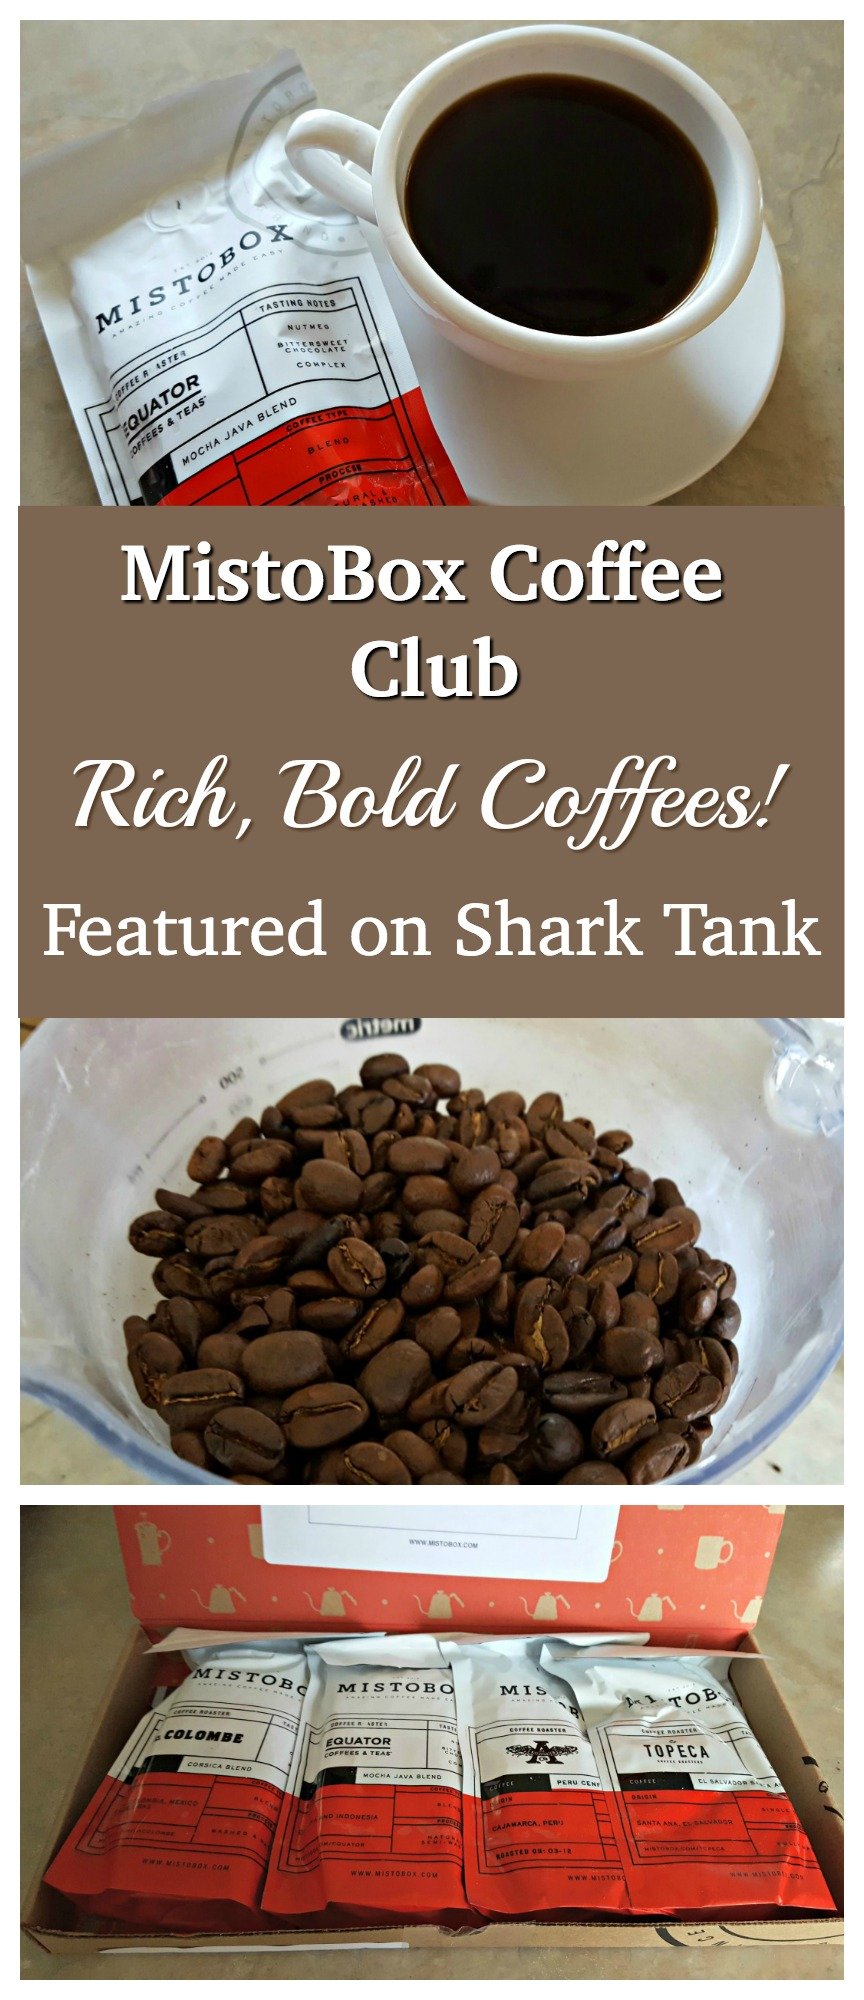 MistoBox is the Coffee Club featured on Shark Tank - We absolutely loved their coffees!!